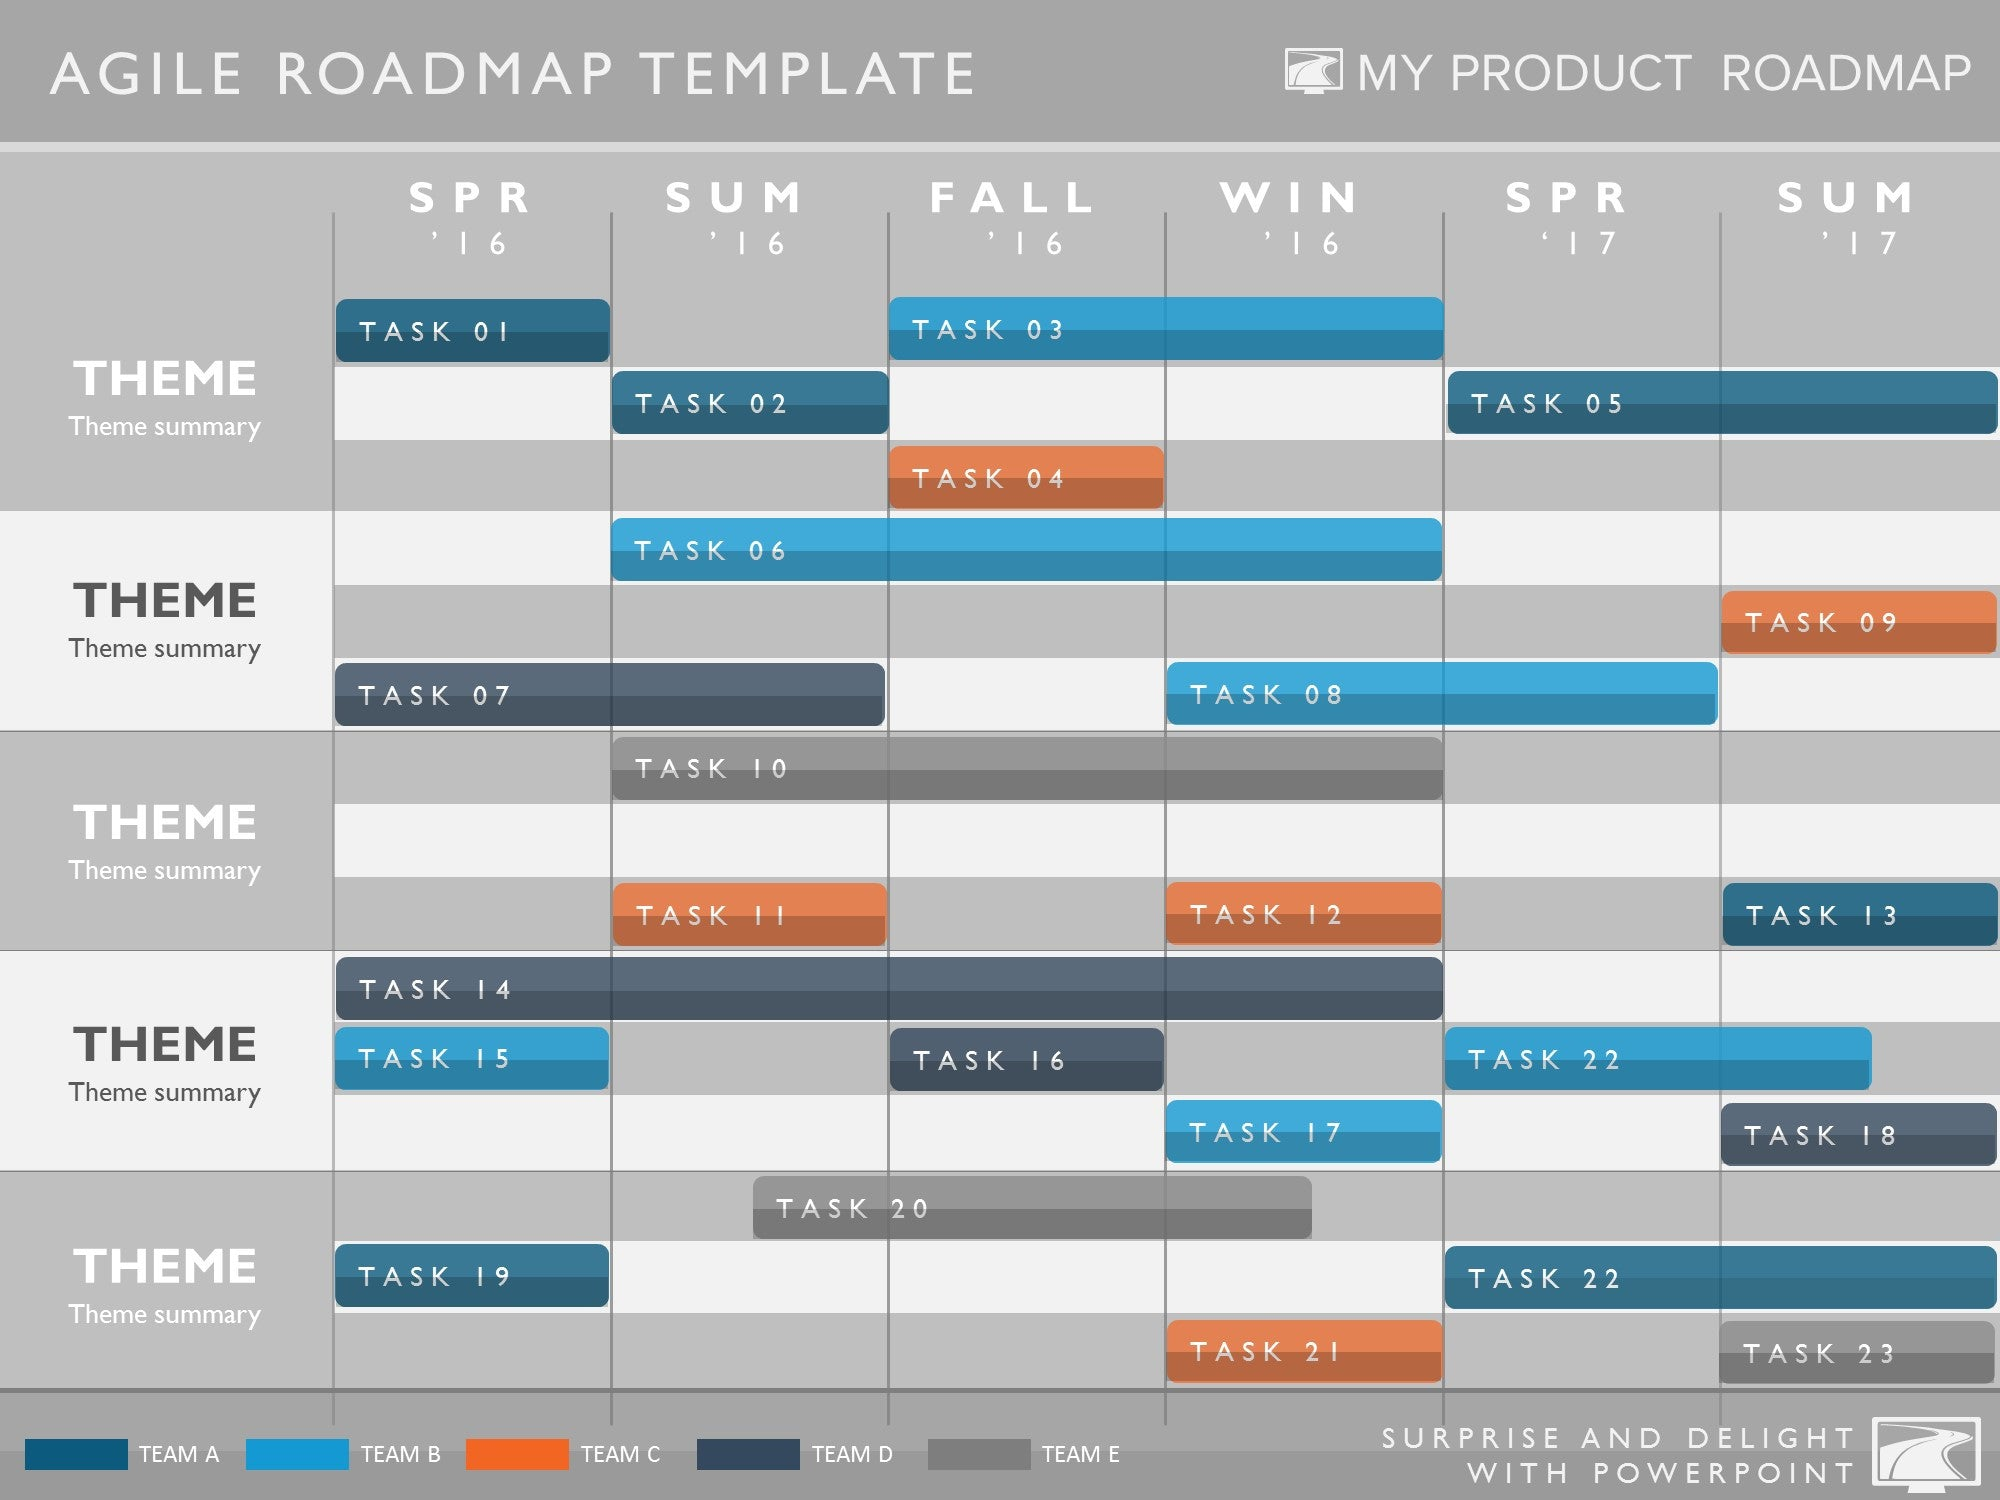 agile roadmap templates for powerpoint, Agile Roadmap Powerpoint Template, Powerpoint templates